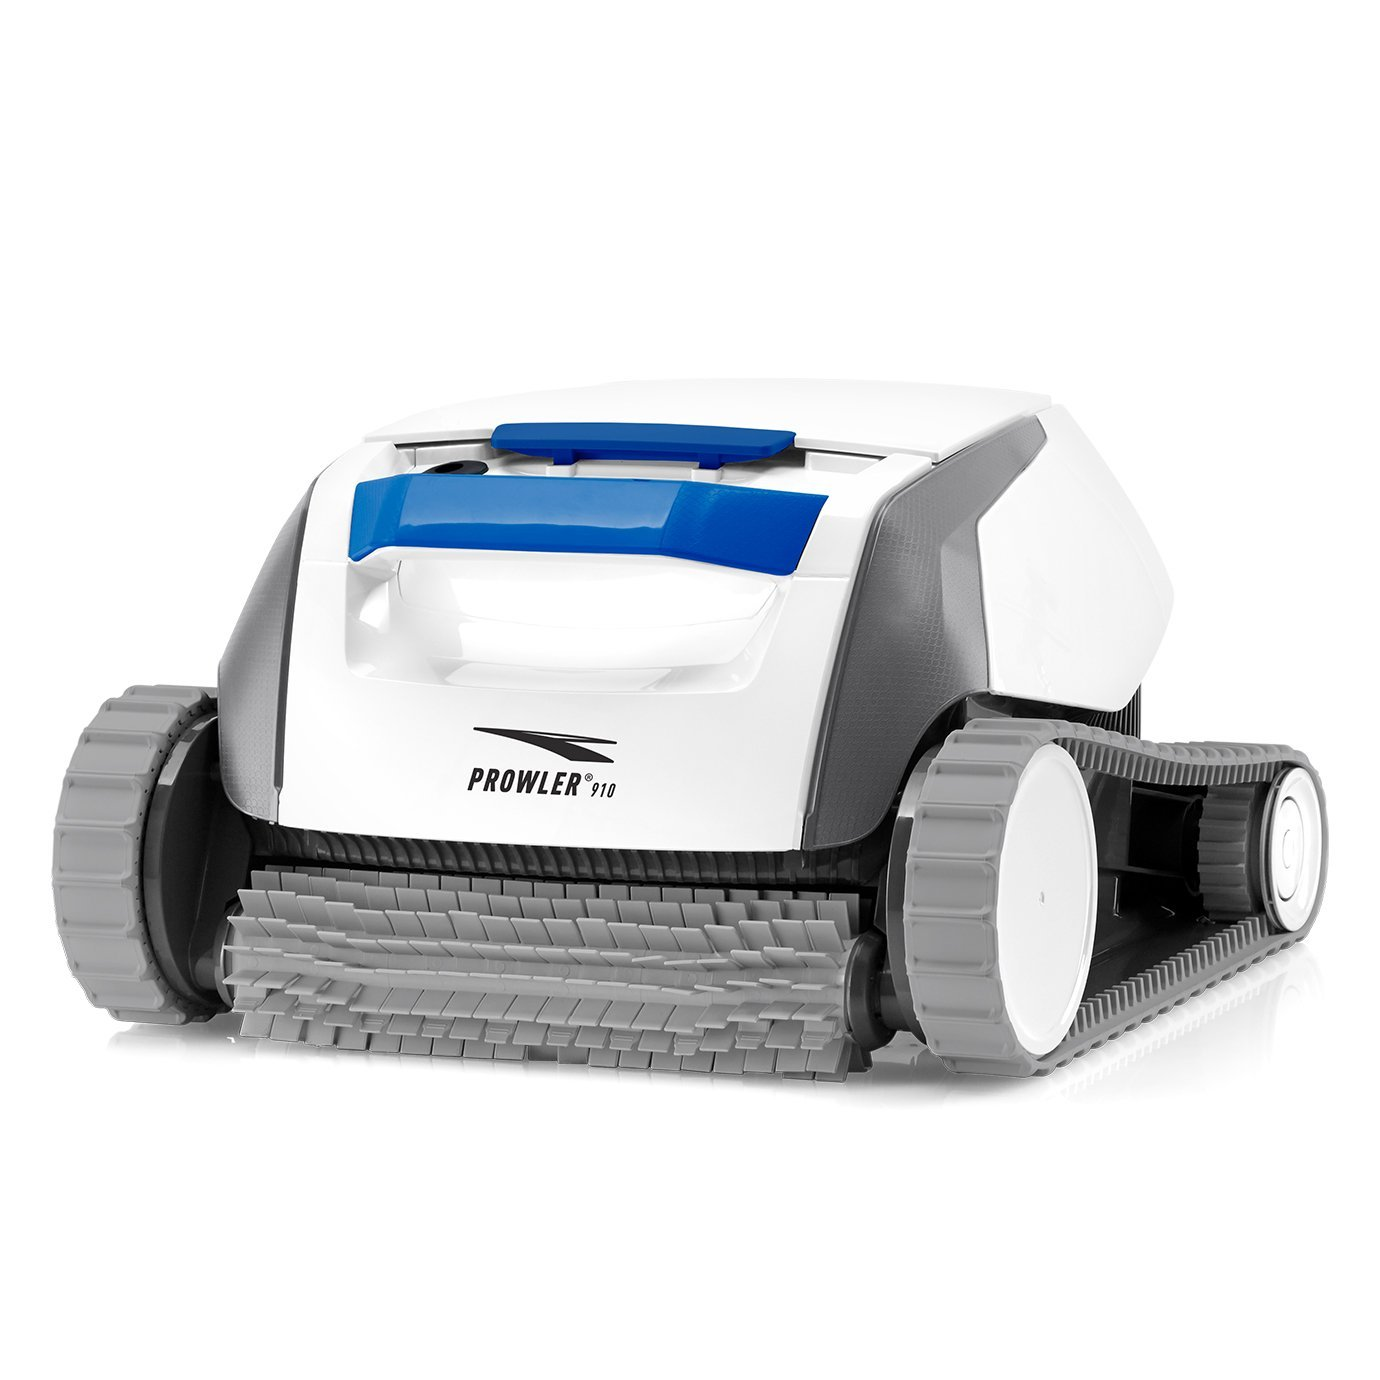 Pentair Kreepy Krauly Prowler Pool Cleaner